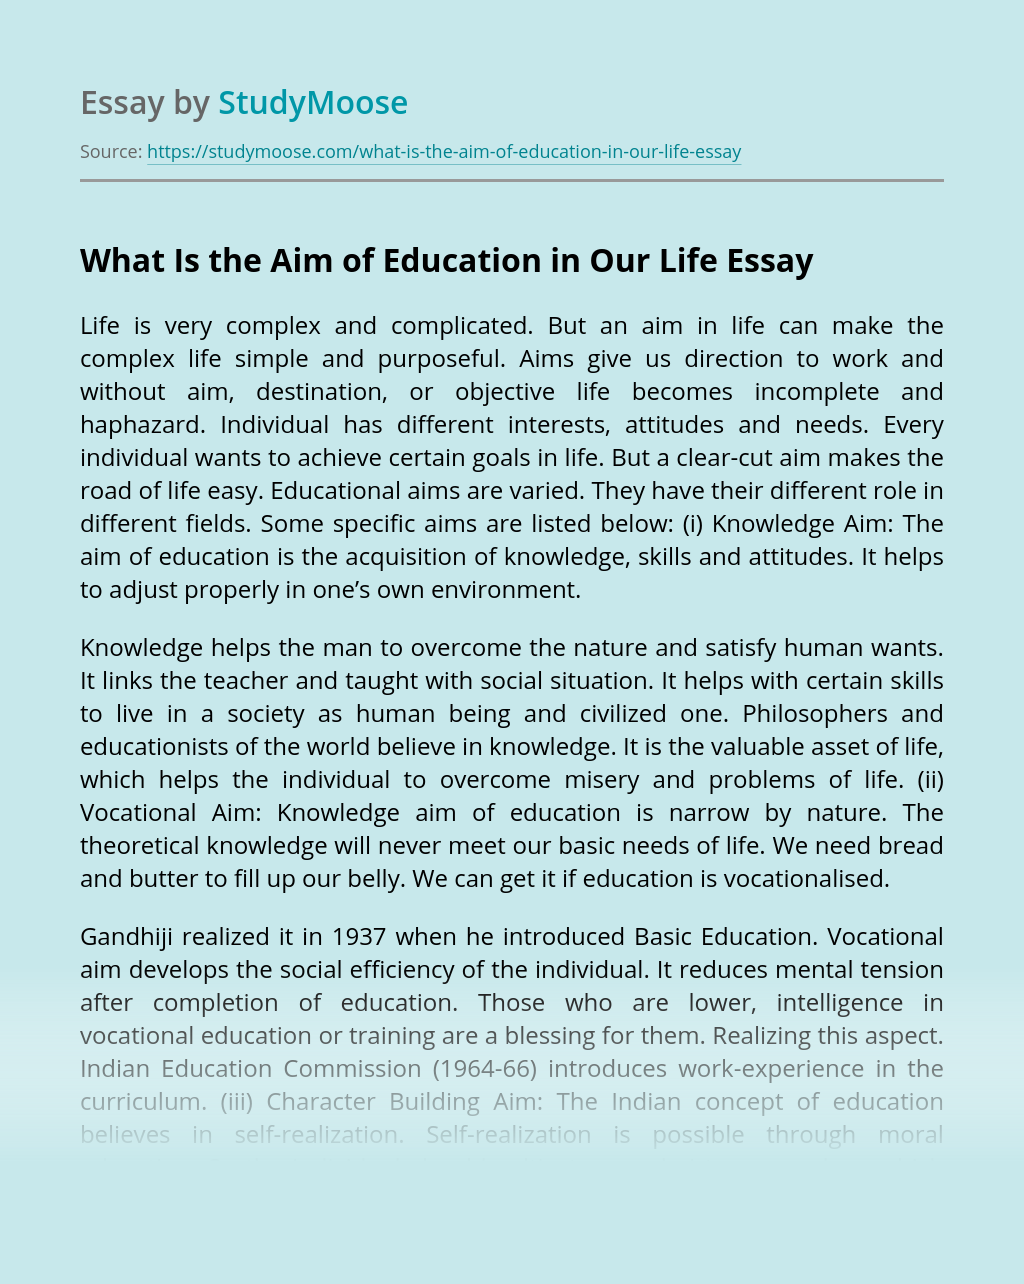 What Is the Aim of Education in Our Life